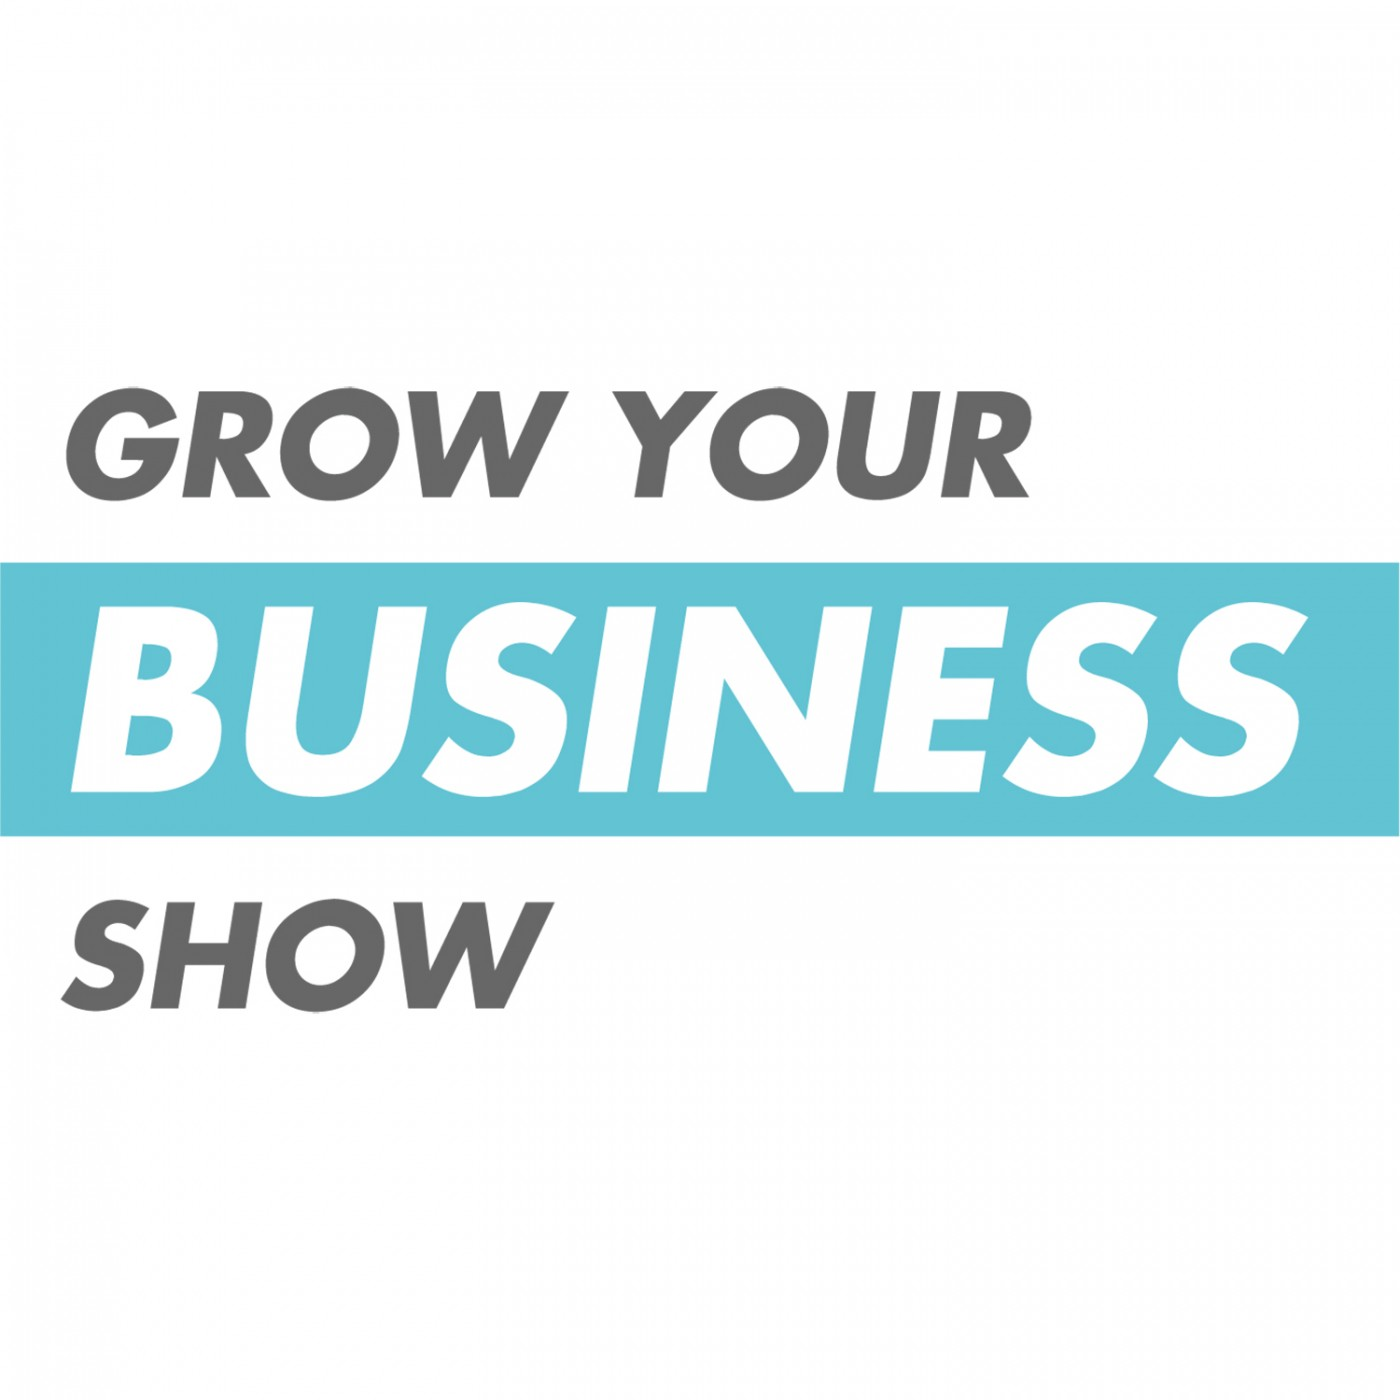 Find Out More About Grow Your Business Show